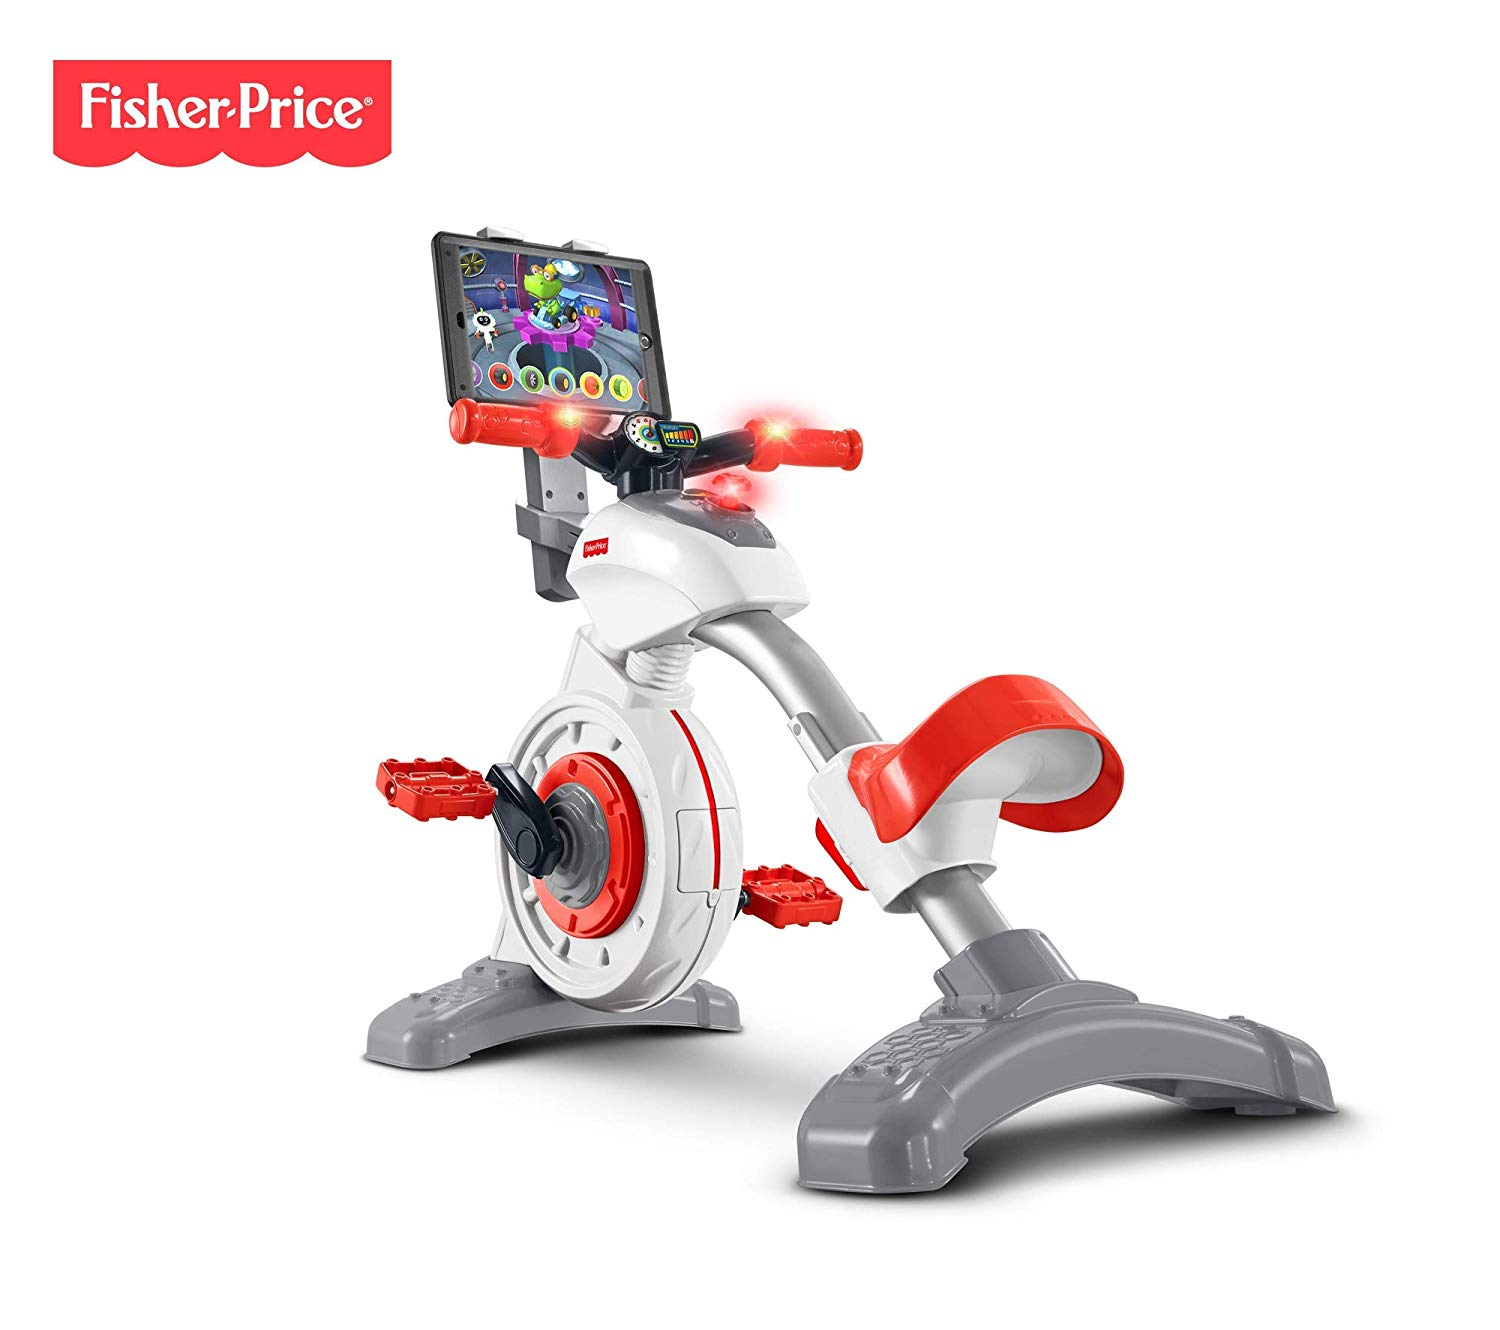 fisher-price think and learn smart cycle bluetooth